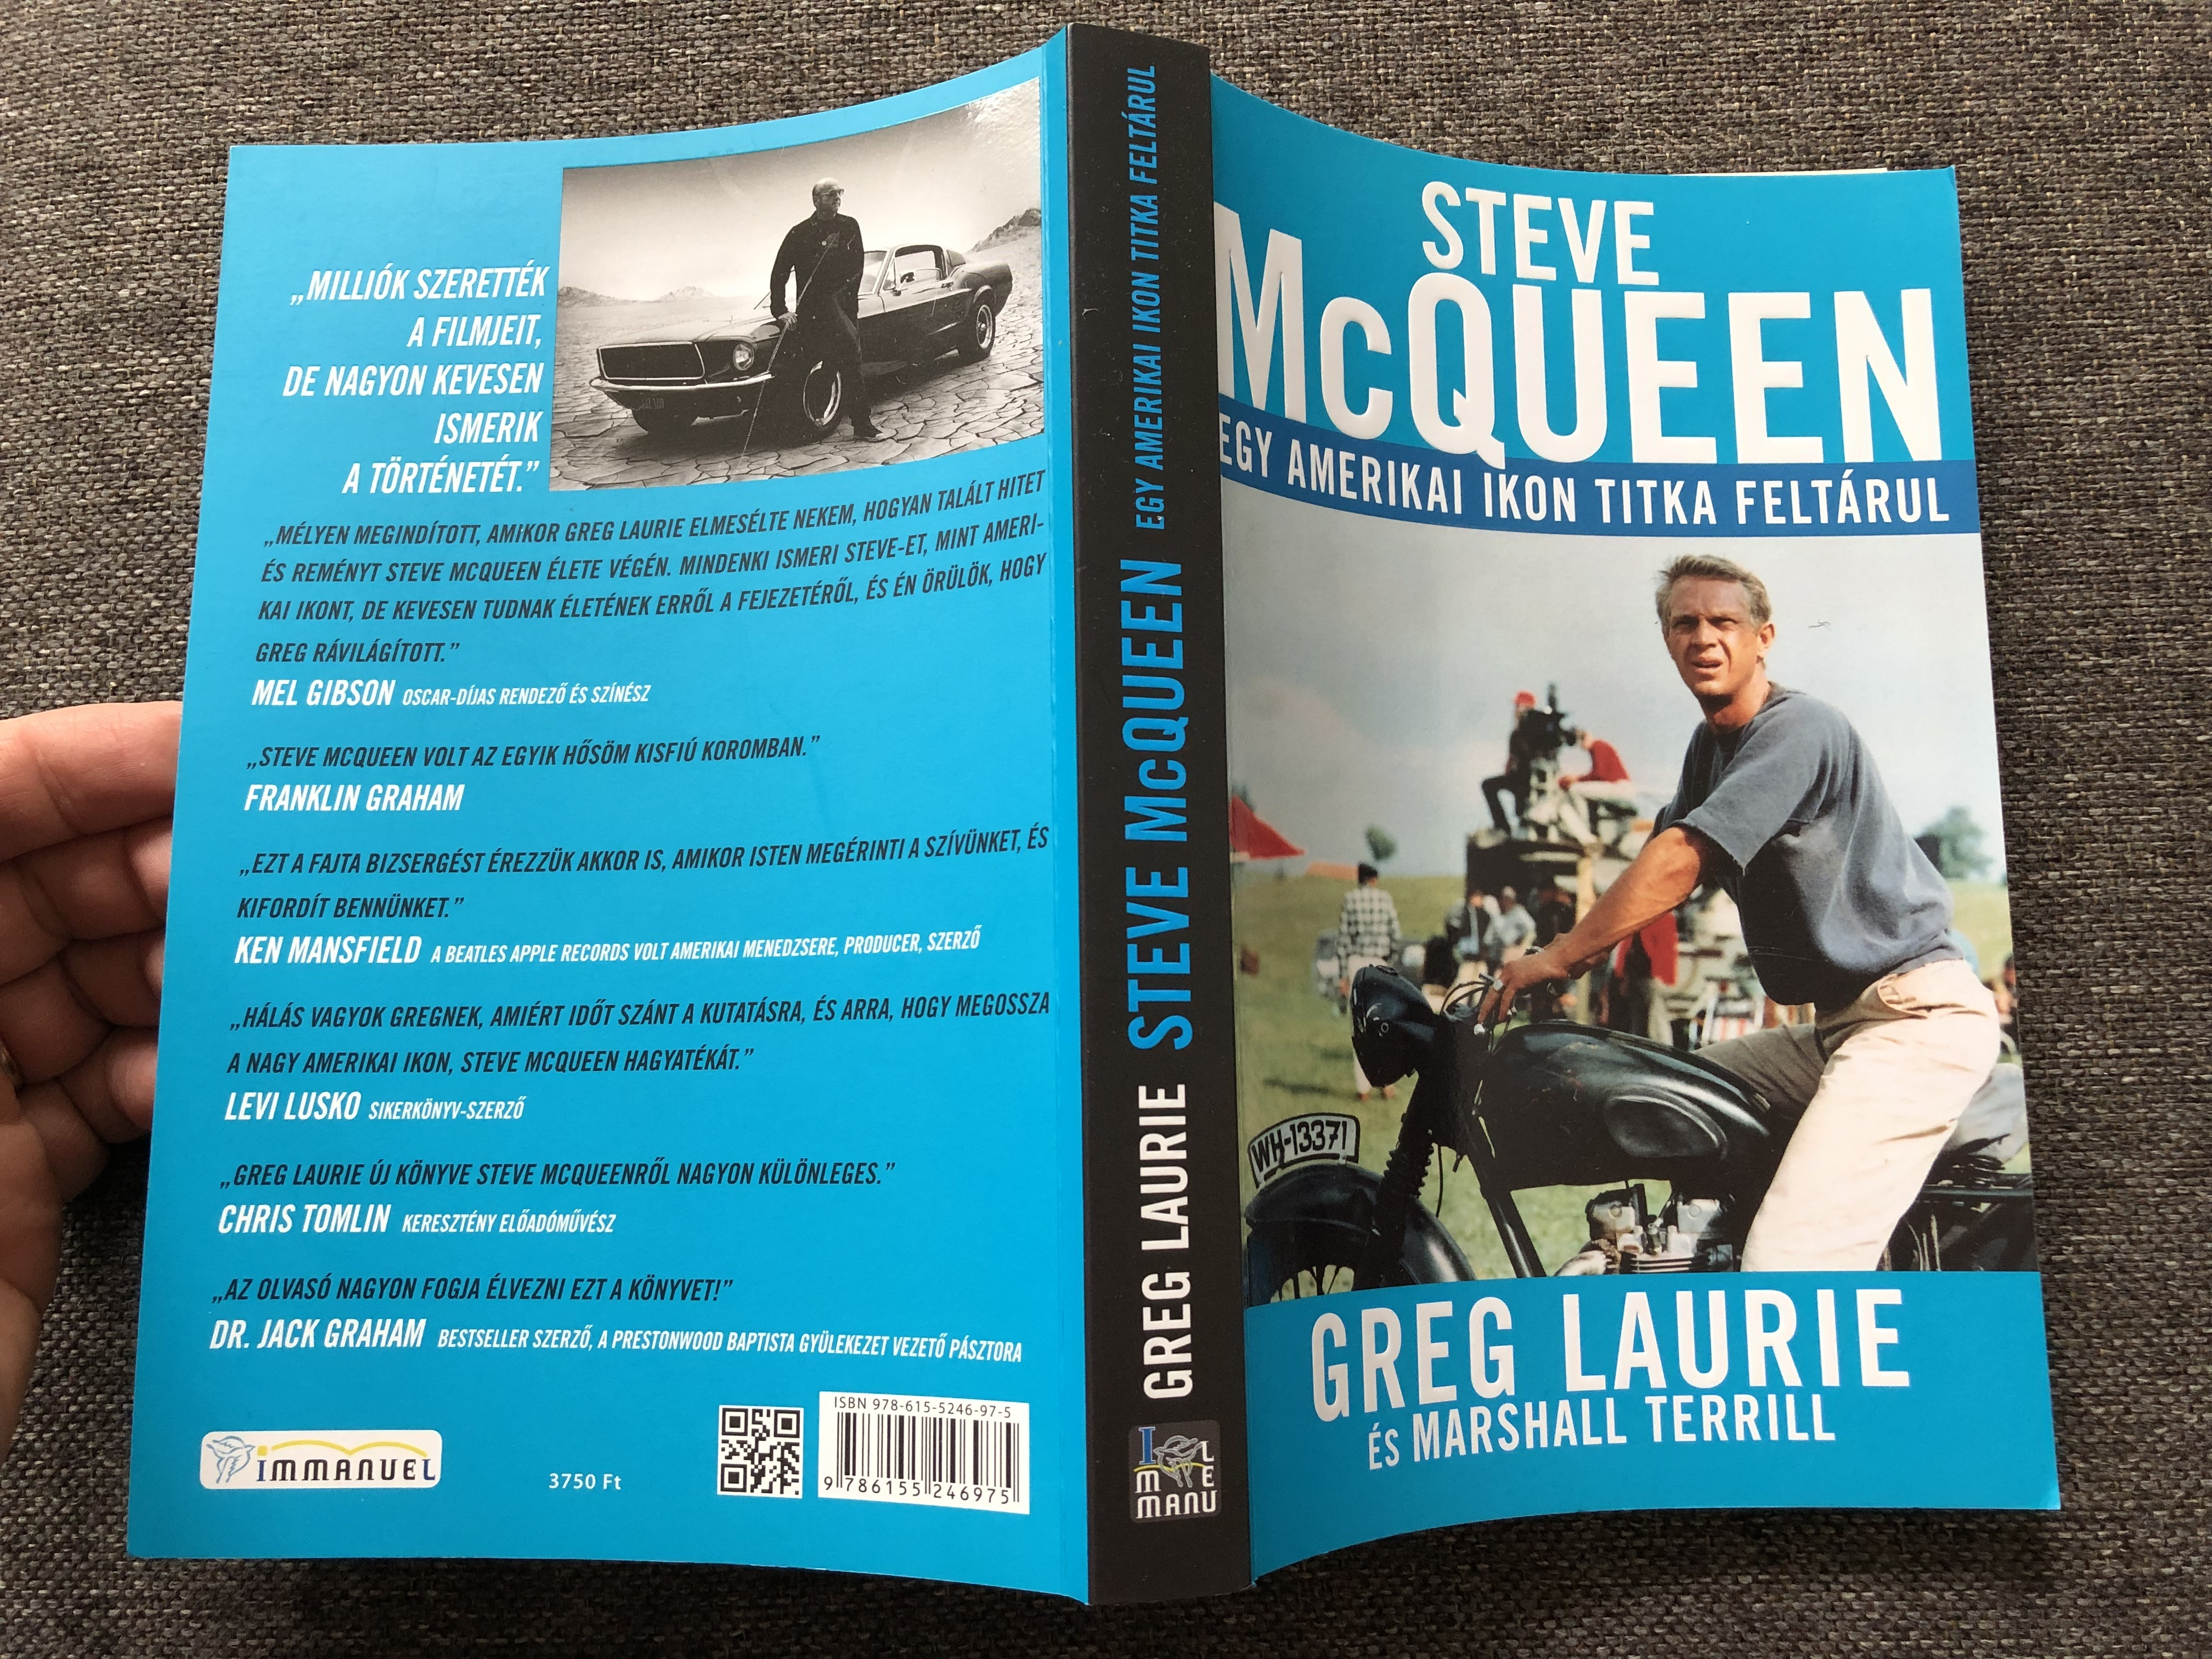 steve-mcqueen-egy-amerikai-ikon-titka-felt-rul-by-greg-laurie-hungarian-translation-of-steve-mcqueen-the-salvation-of-an-american-icon-7-.jpg